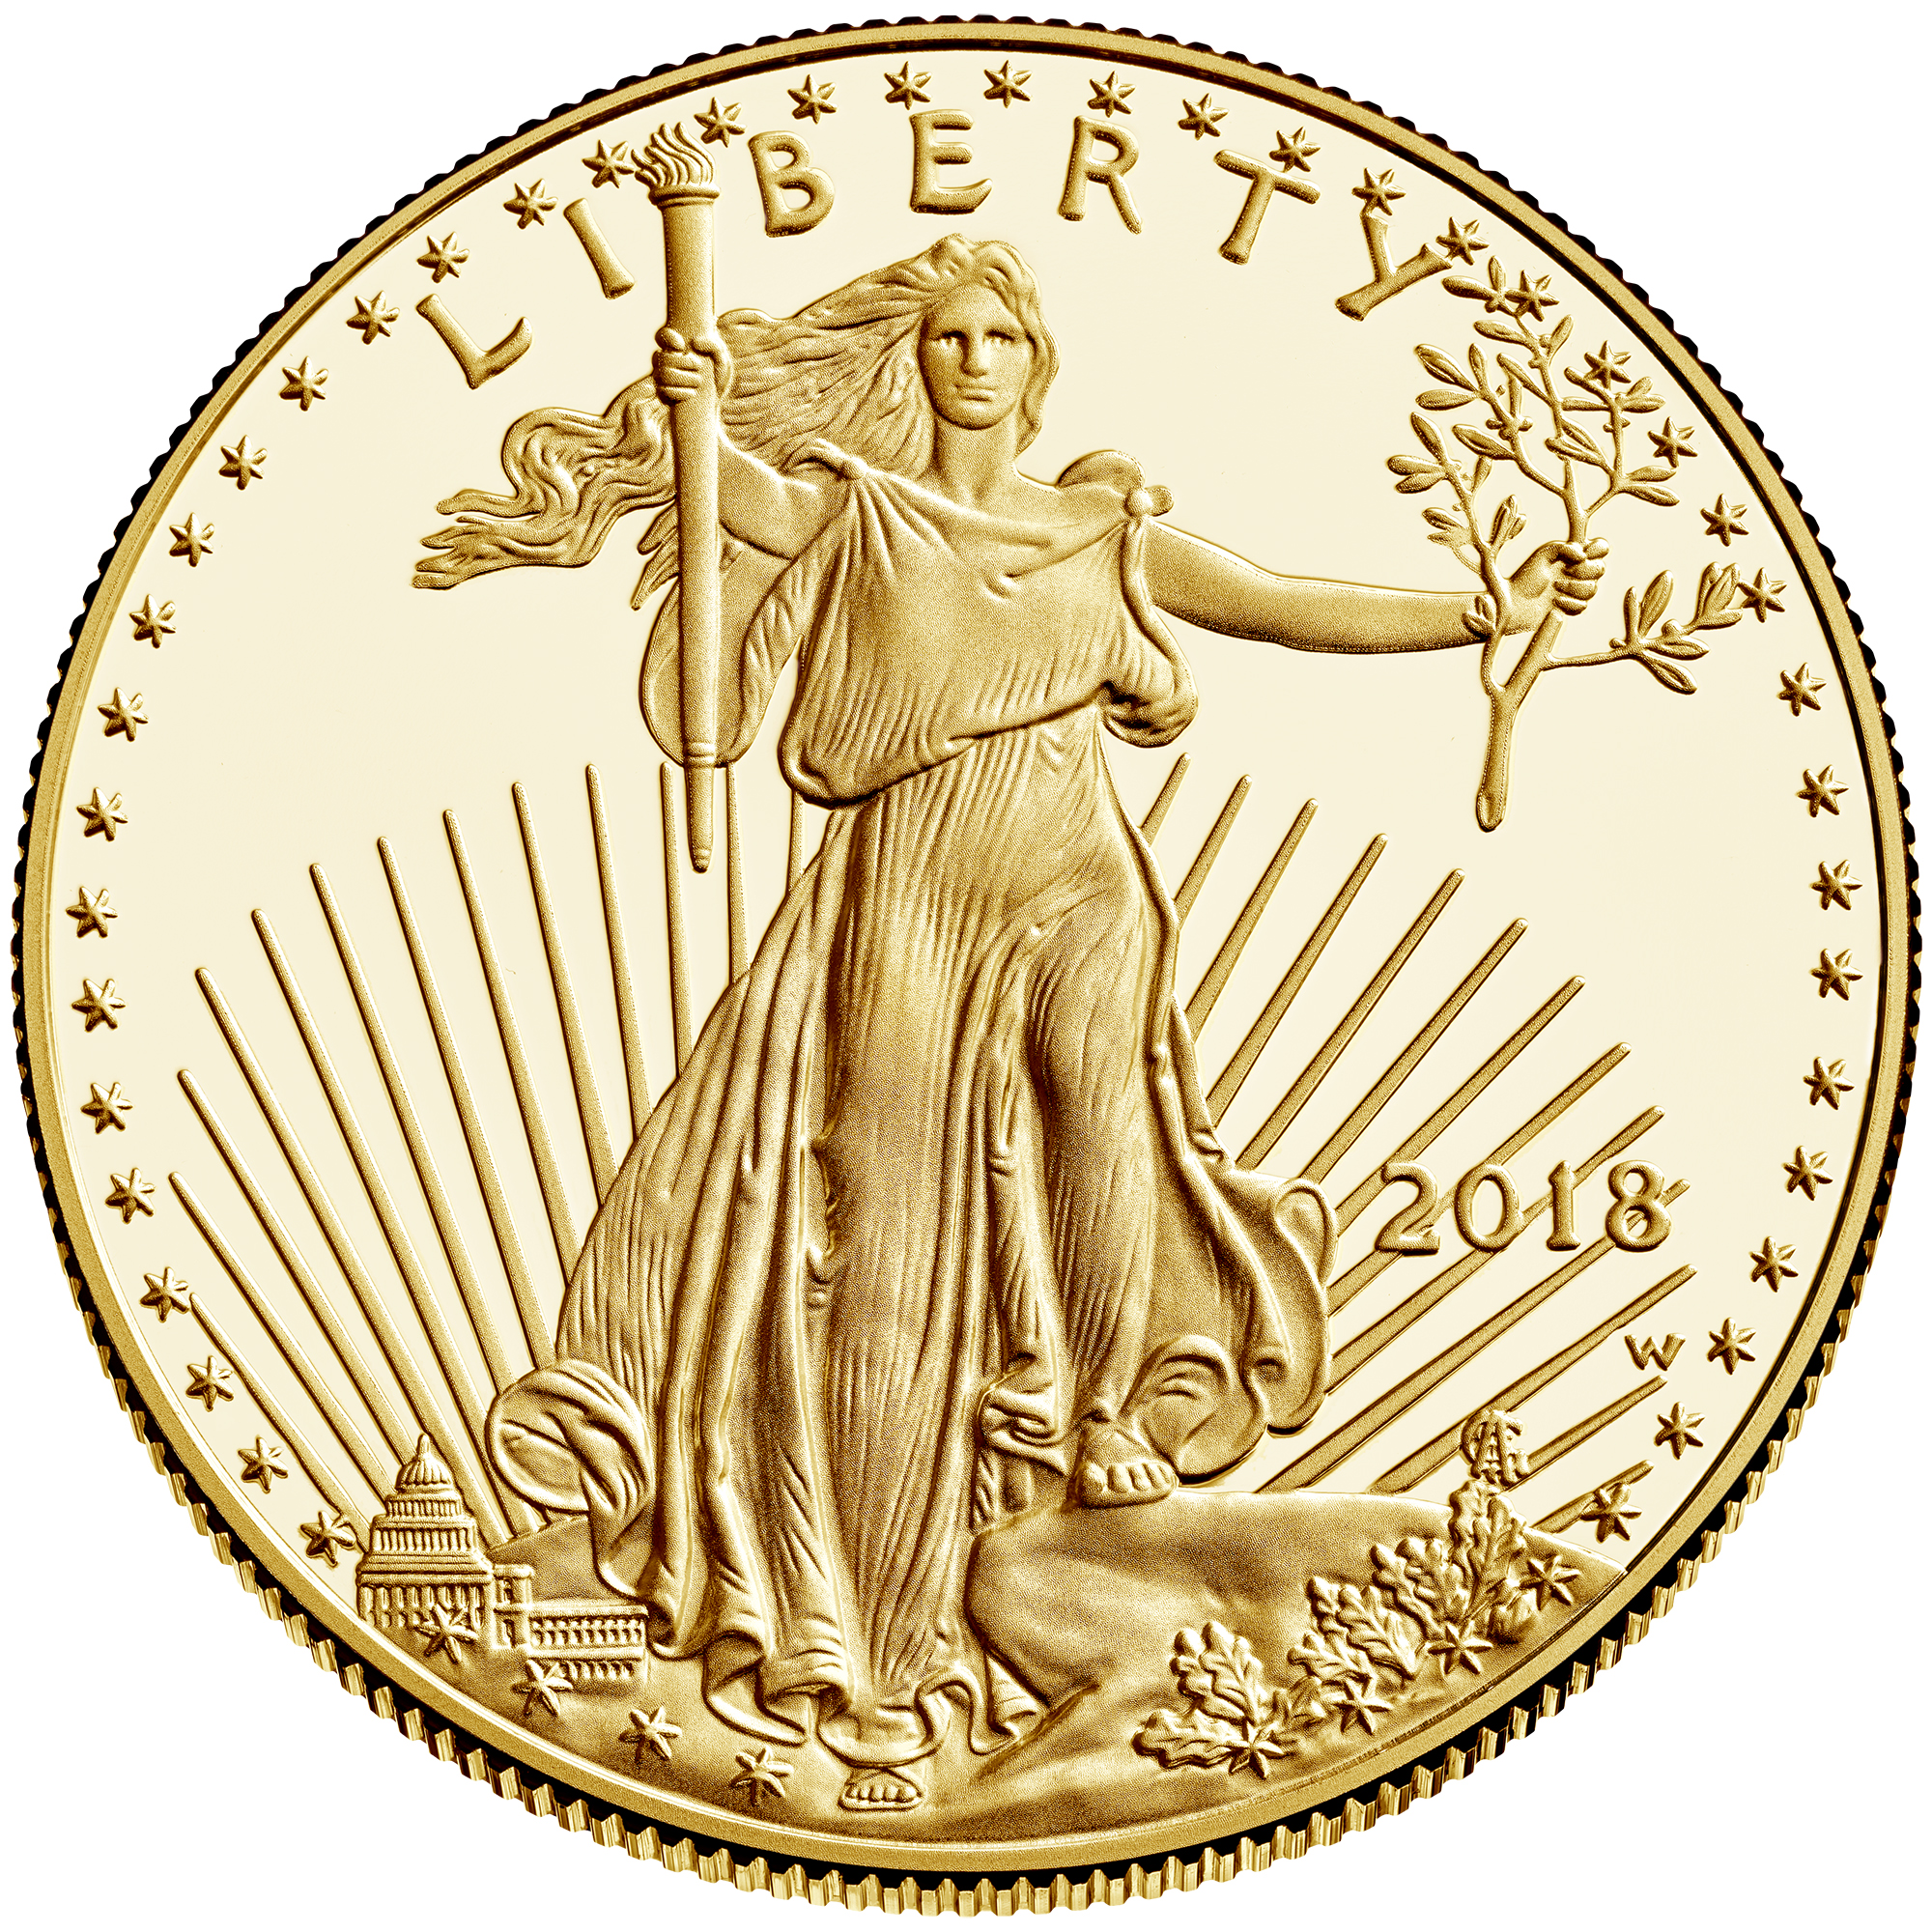 2018 American Eagle Gold One Ounce Proof Coin Obverse